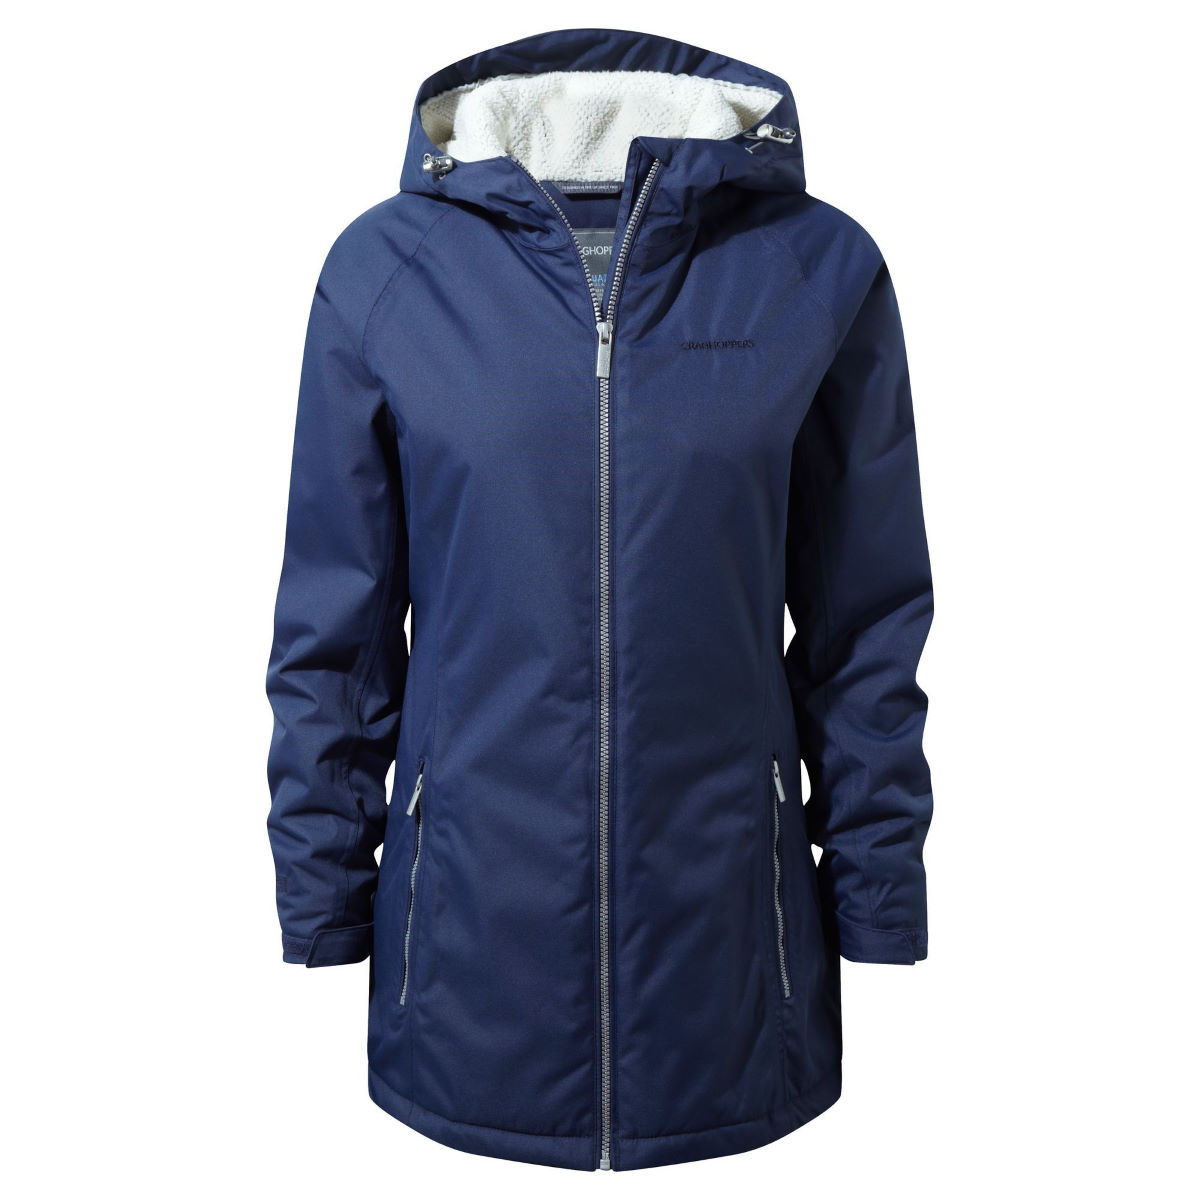 Chaqueta Craghoppers Madigan Classic Thermic II para mujer - Chaquetas impermeables